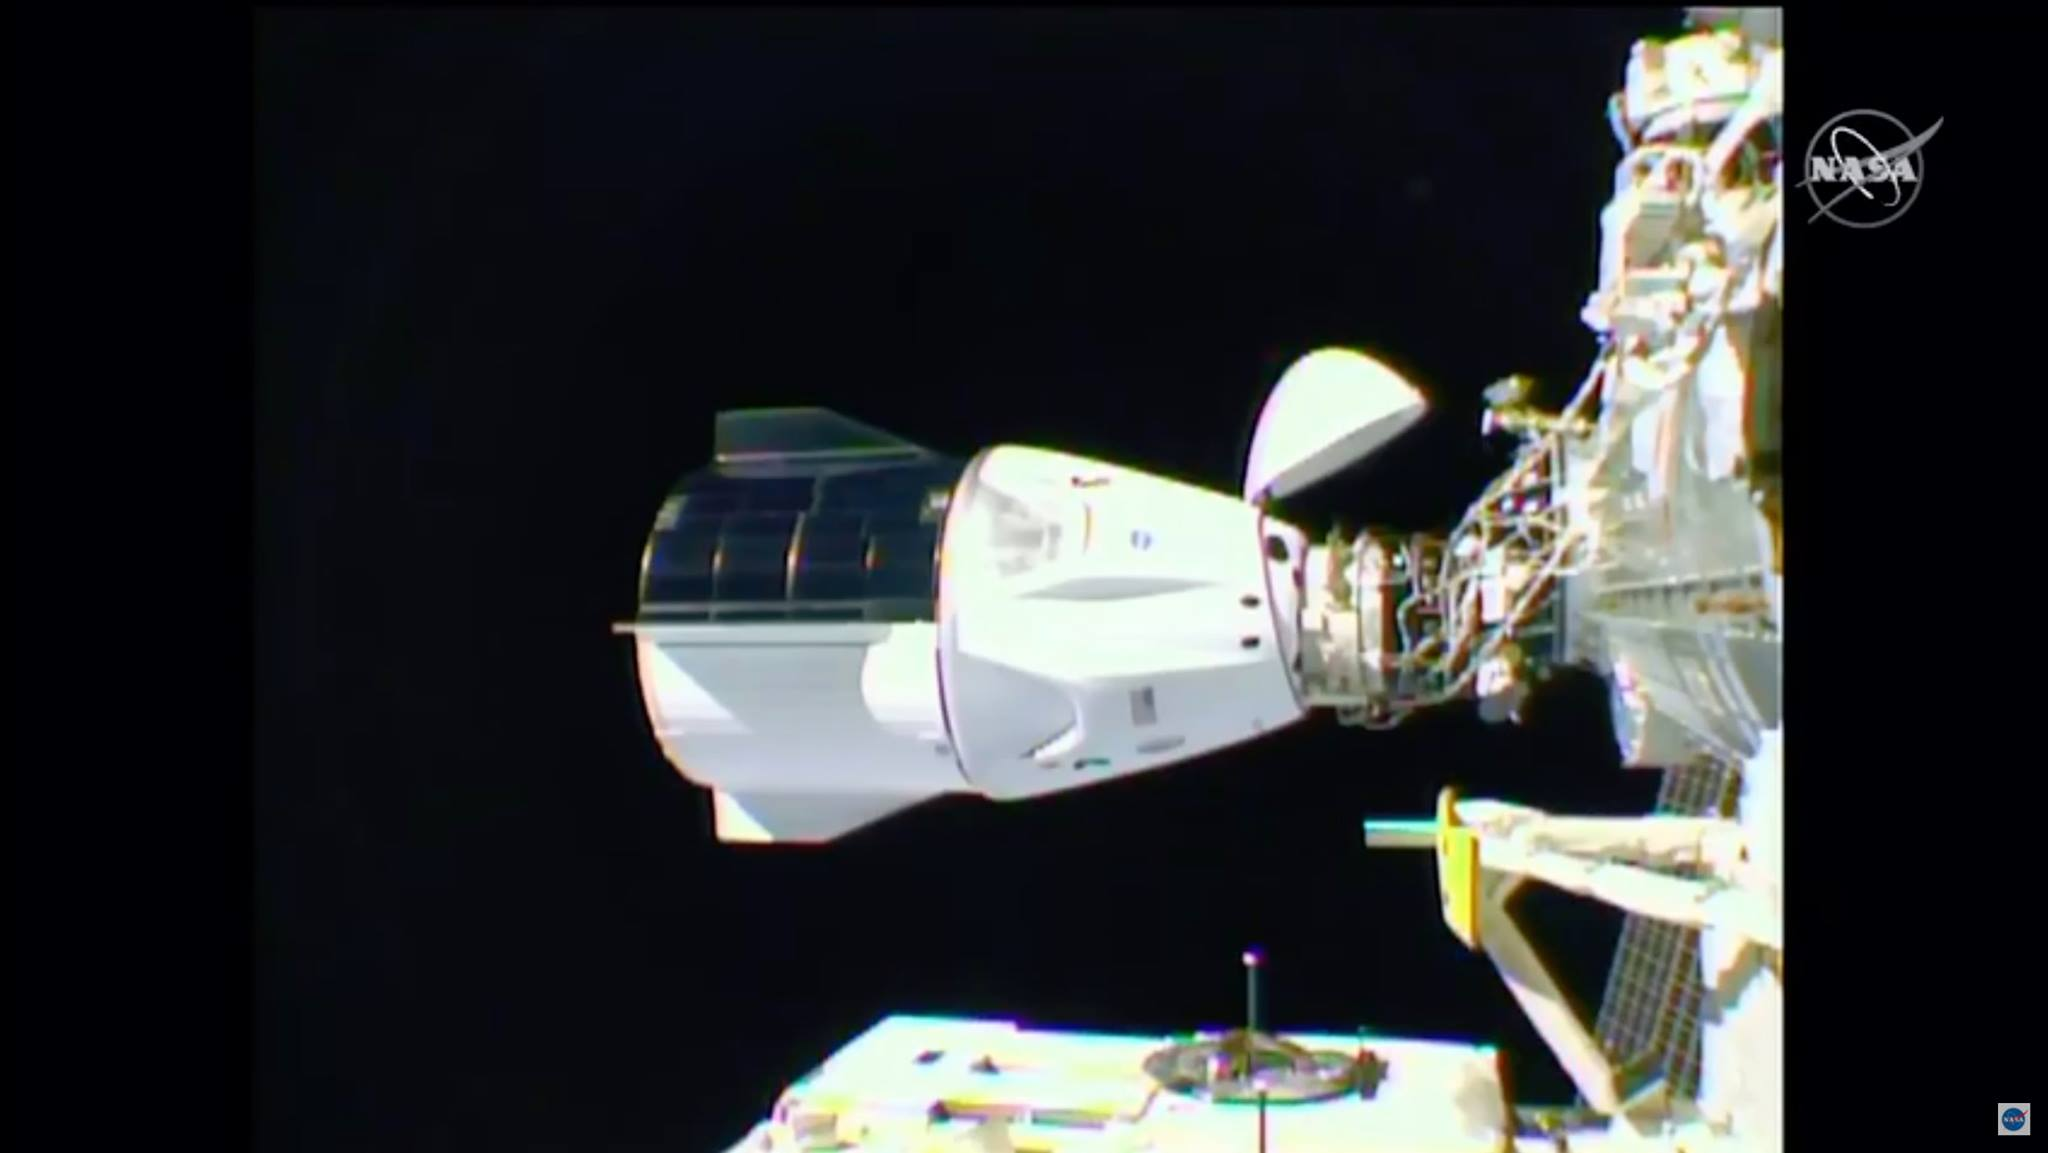 SpaceX Crew Dragon Docks at International Space Station Starting 1st Seven Person Crew